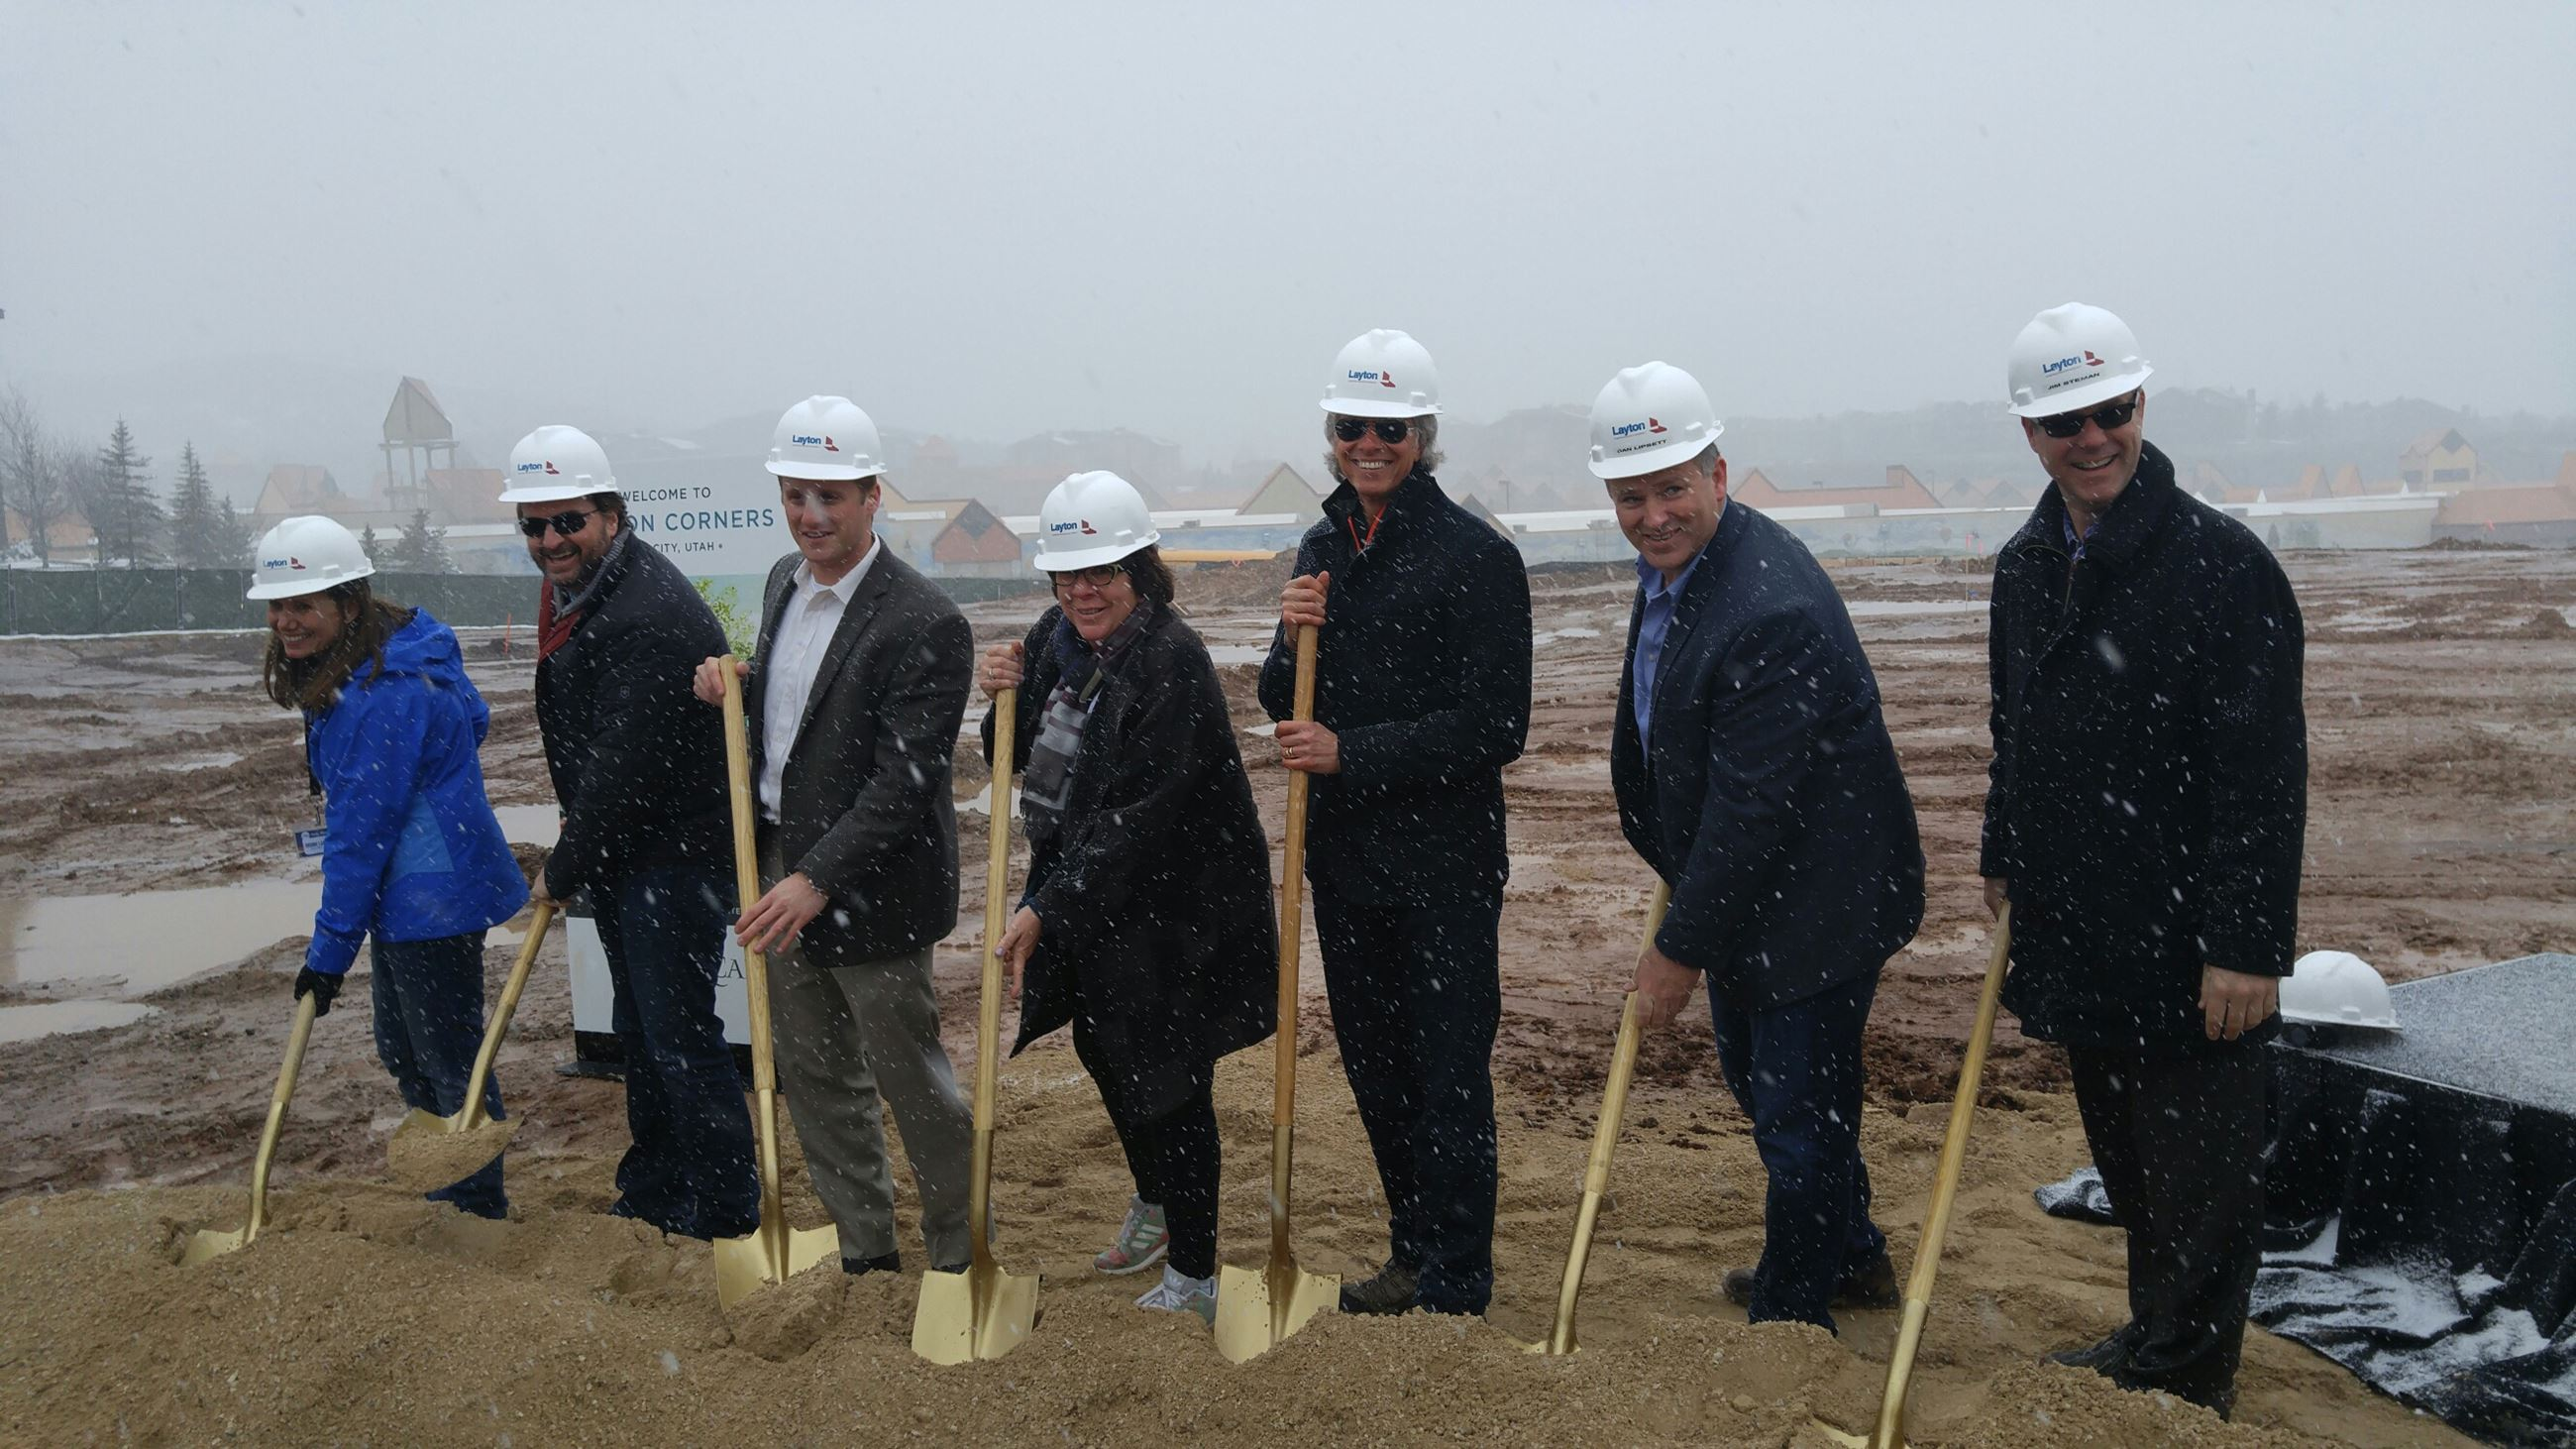 Groundbreaking new Whole Foods @ Canyon Corners